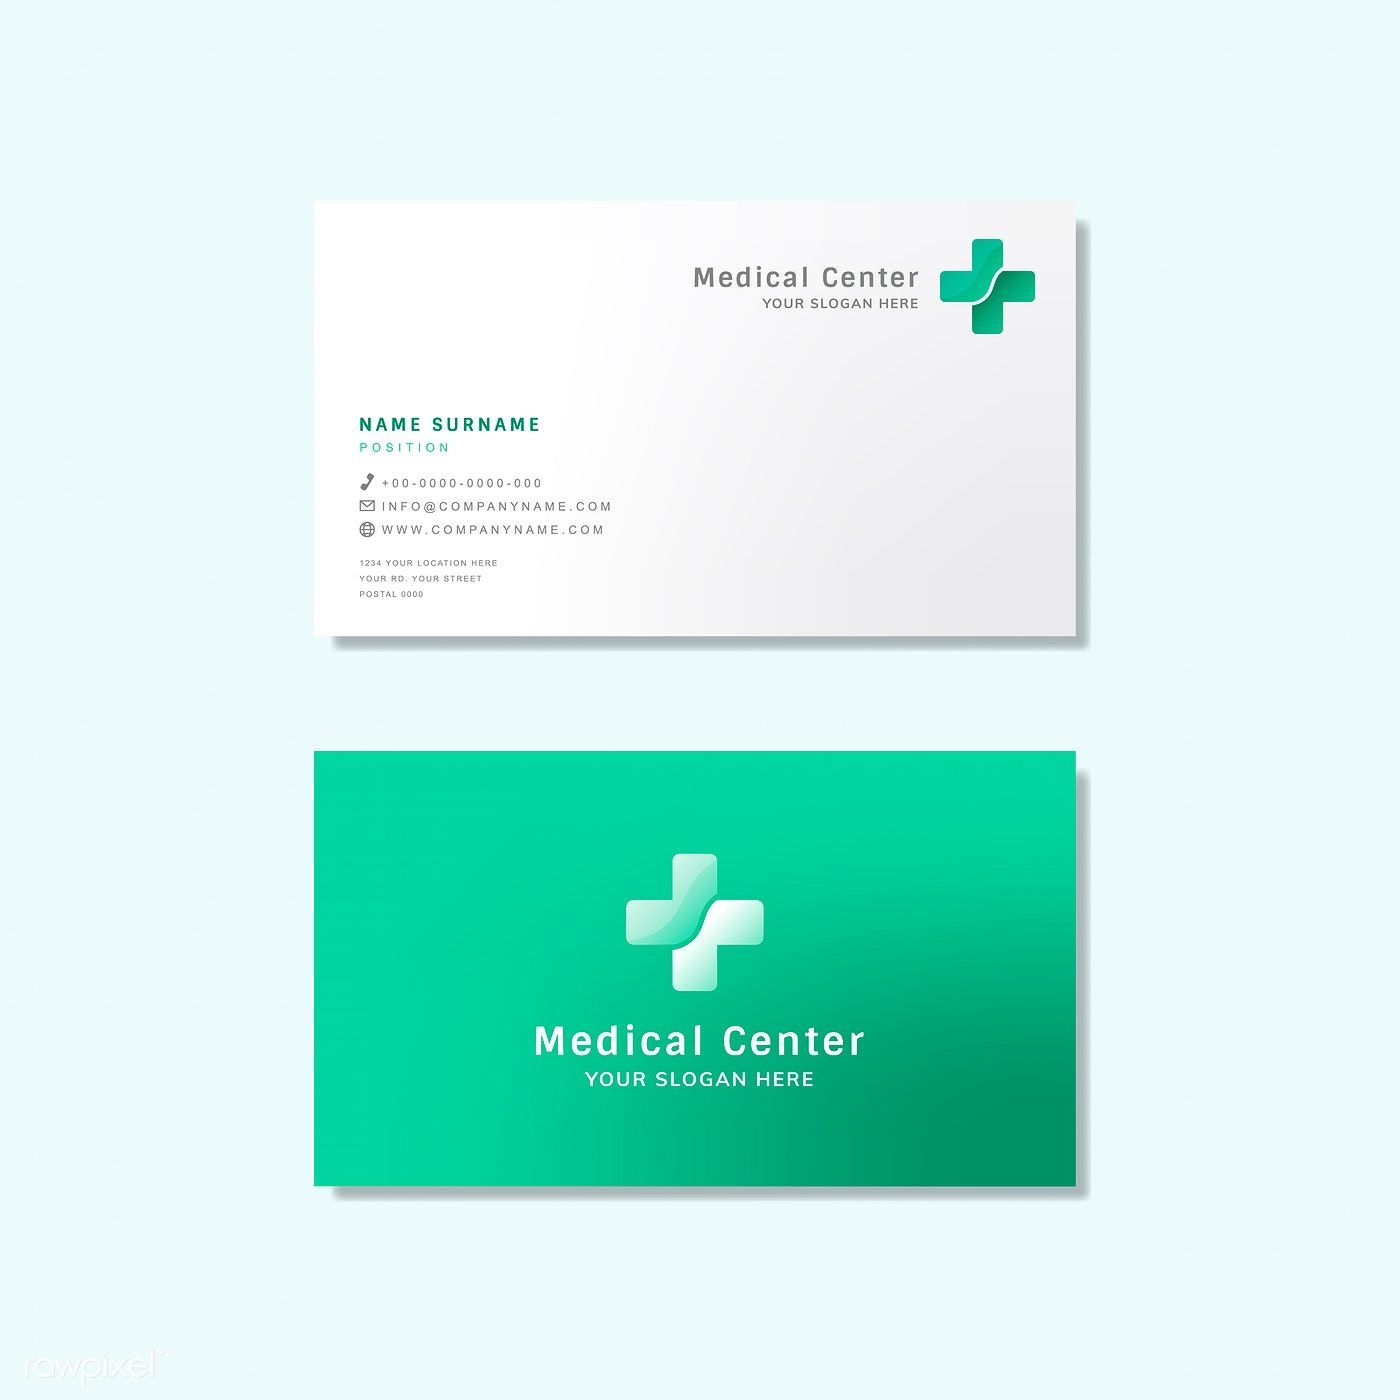 Medical Professional Business Card Design Mockup Free In Medical Business Card Medical Business Card Design Professional Business Cards Medical Business Card